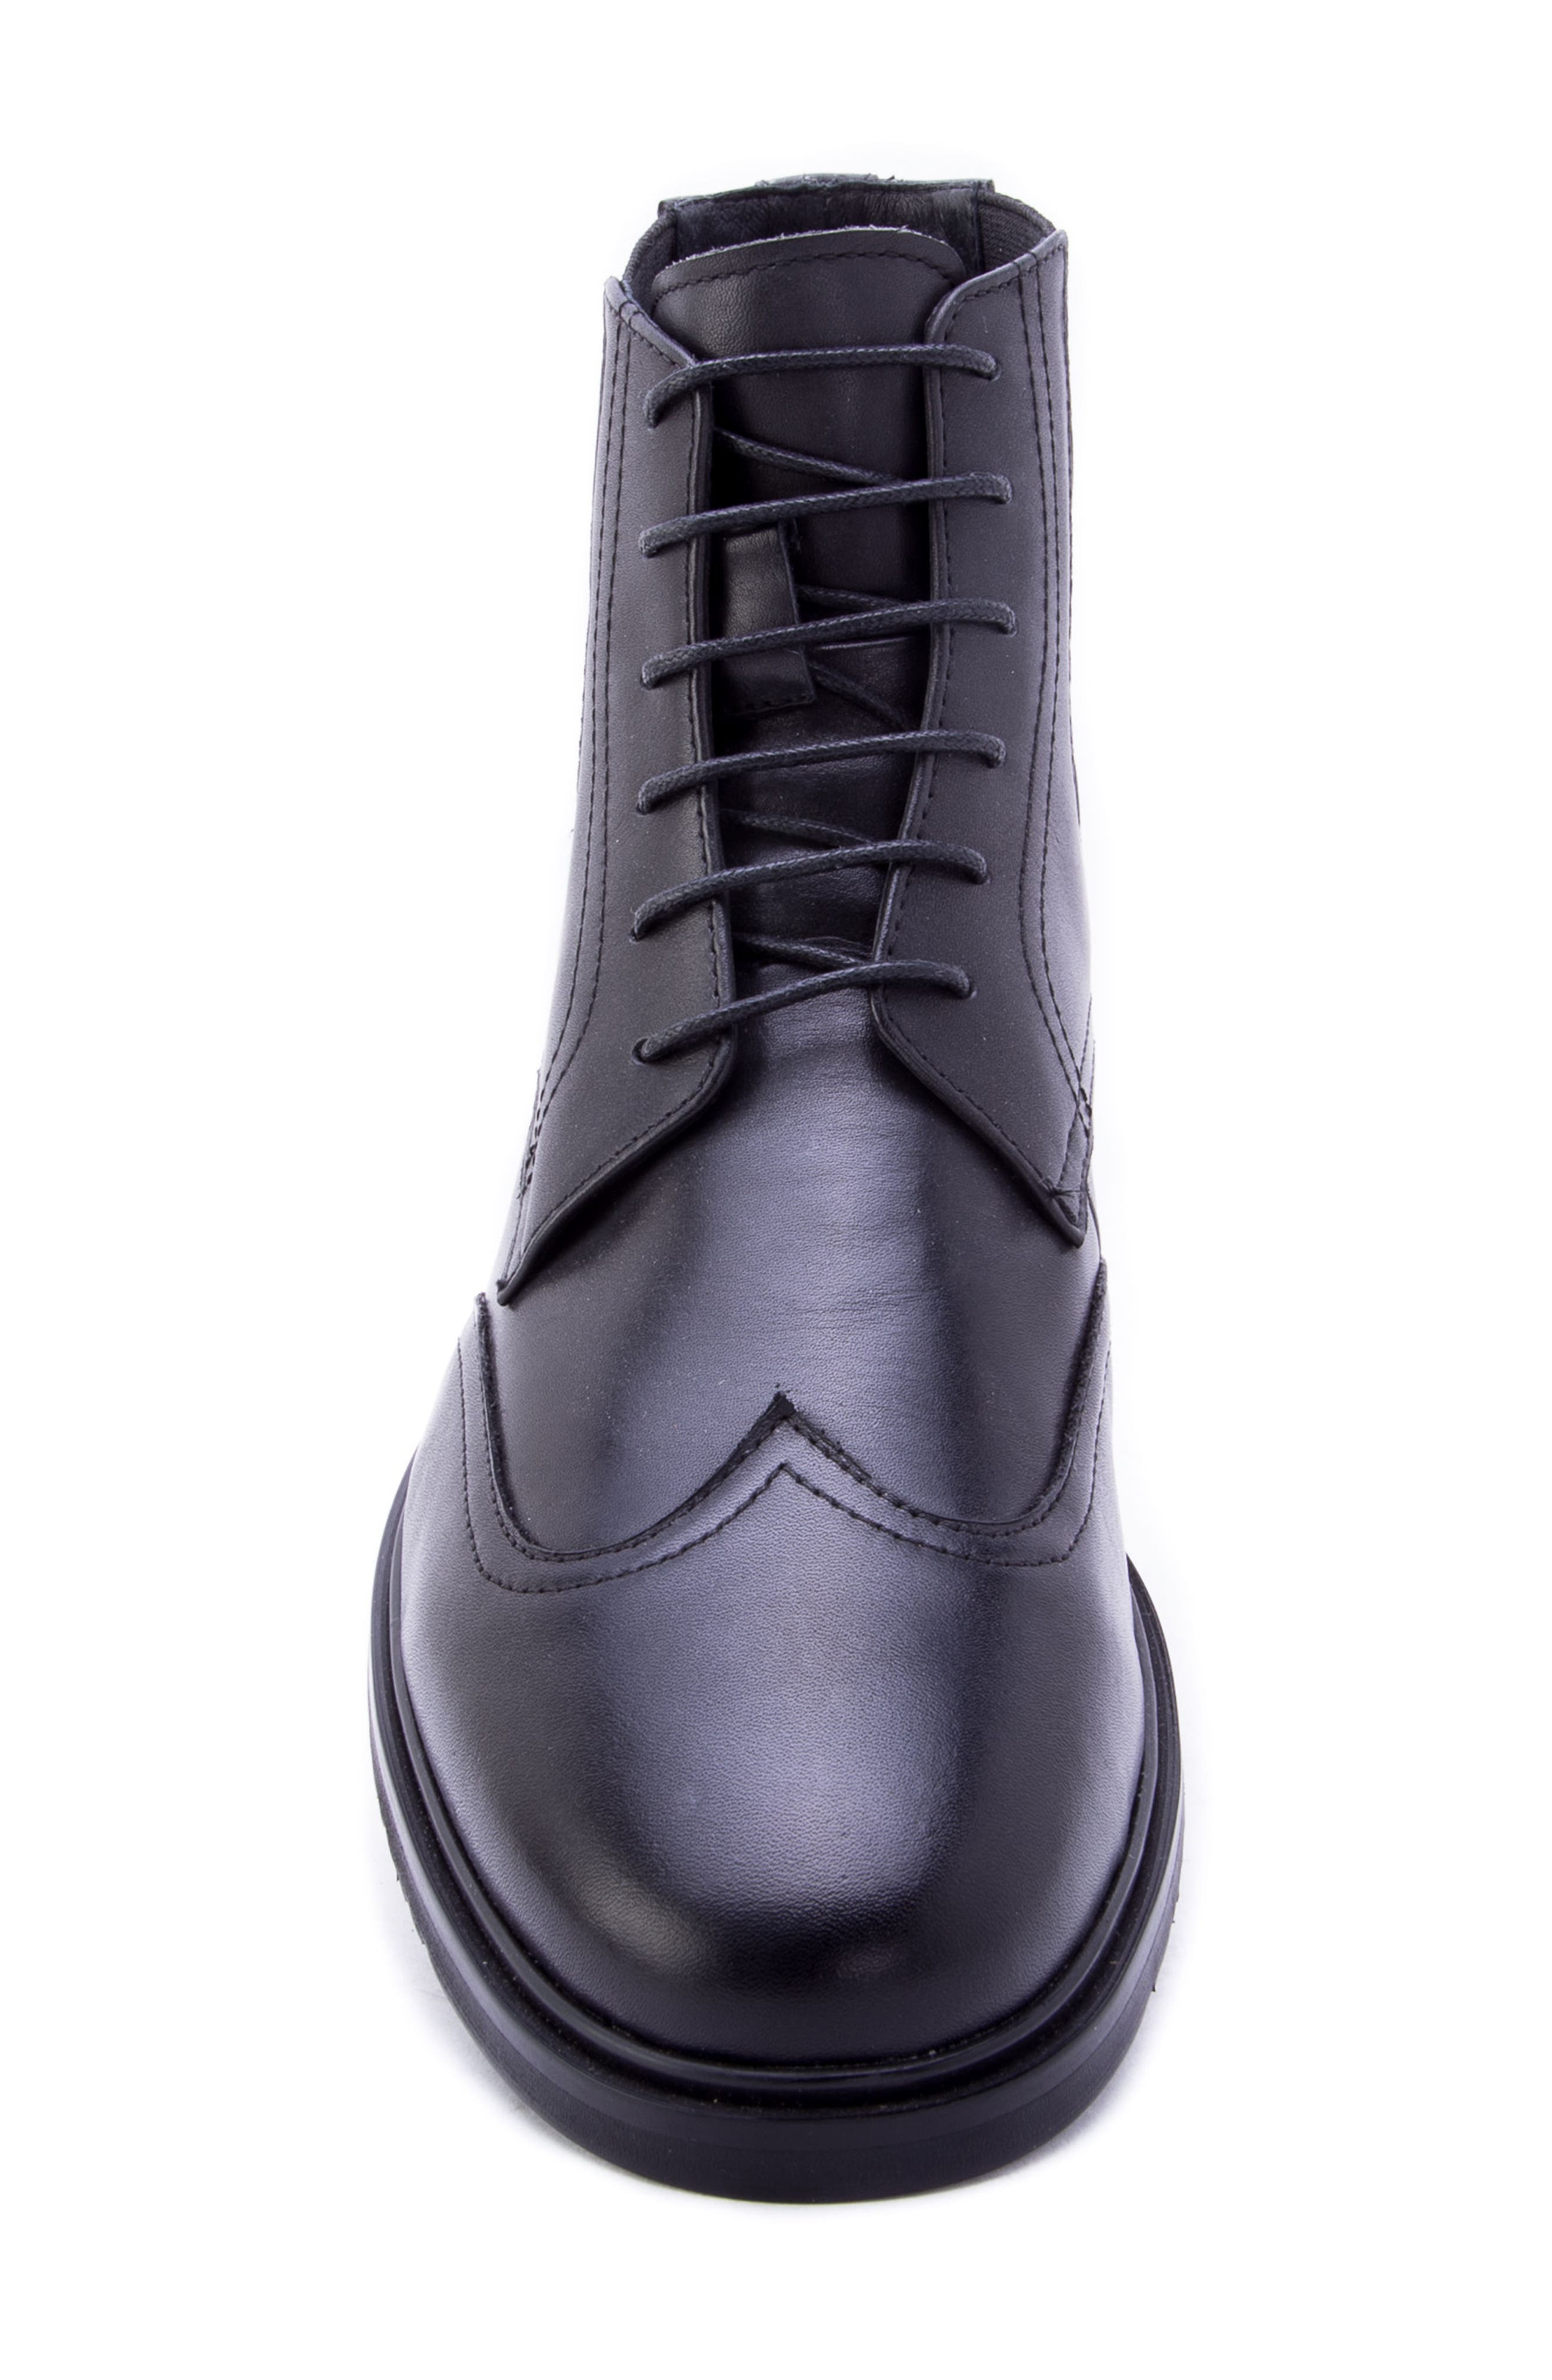 Morell Lace-Up Chelsea Boot,                             Alternate thumbnail 5, color,                             001